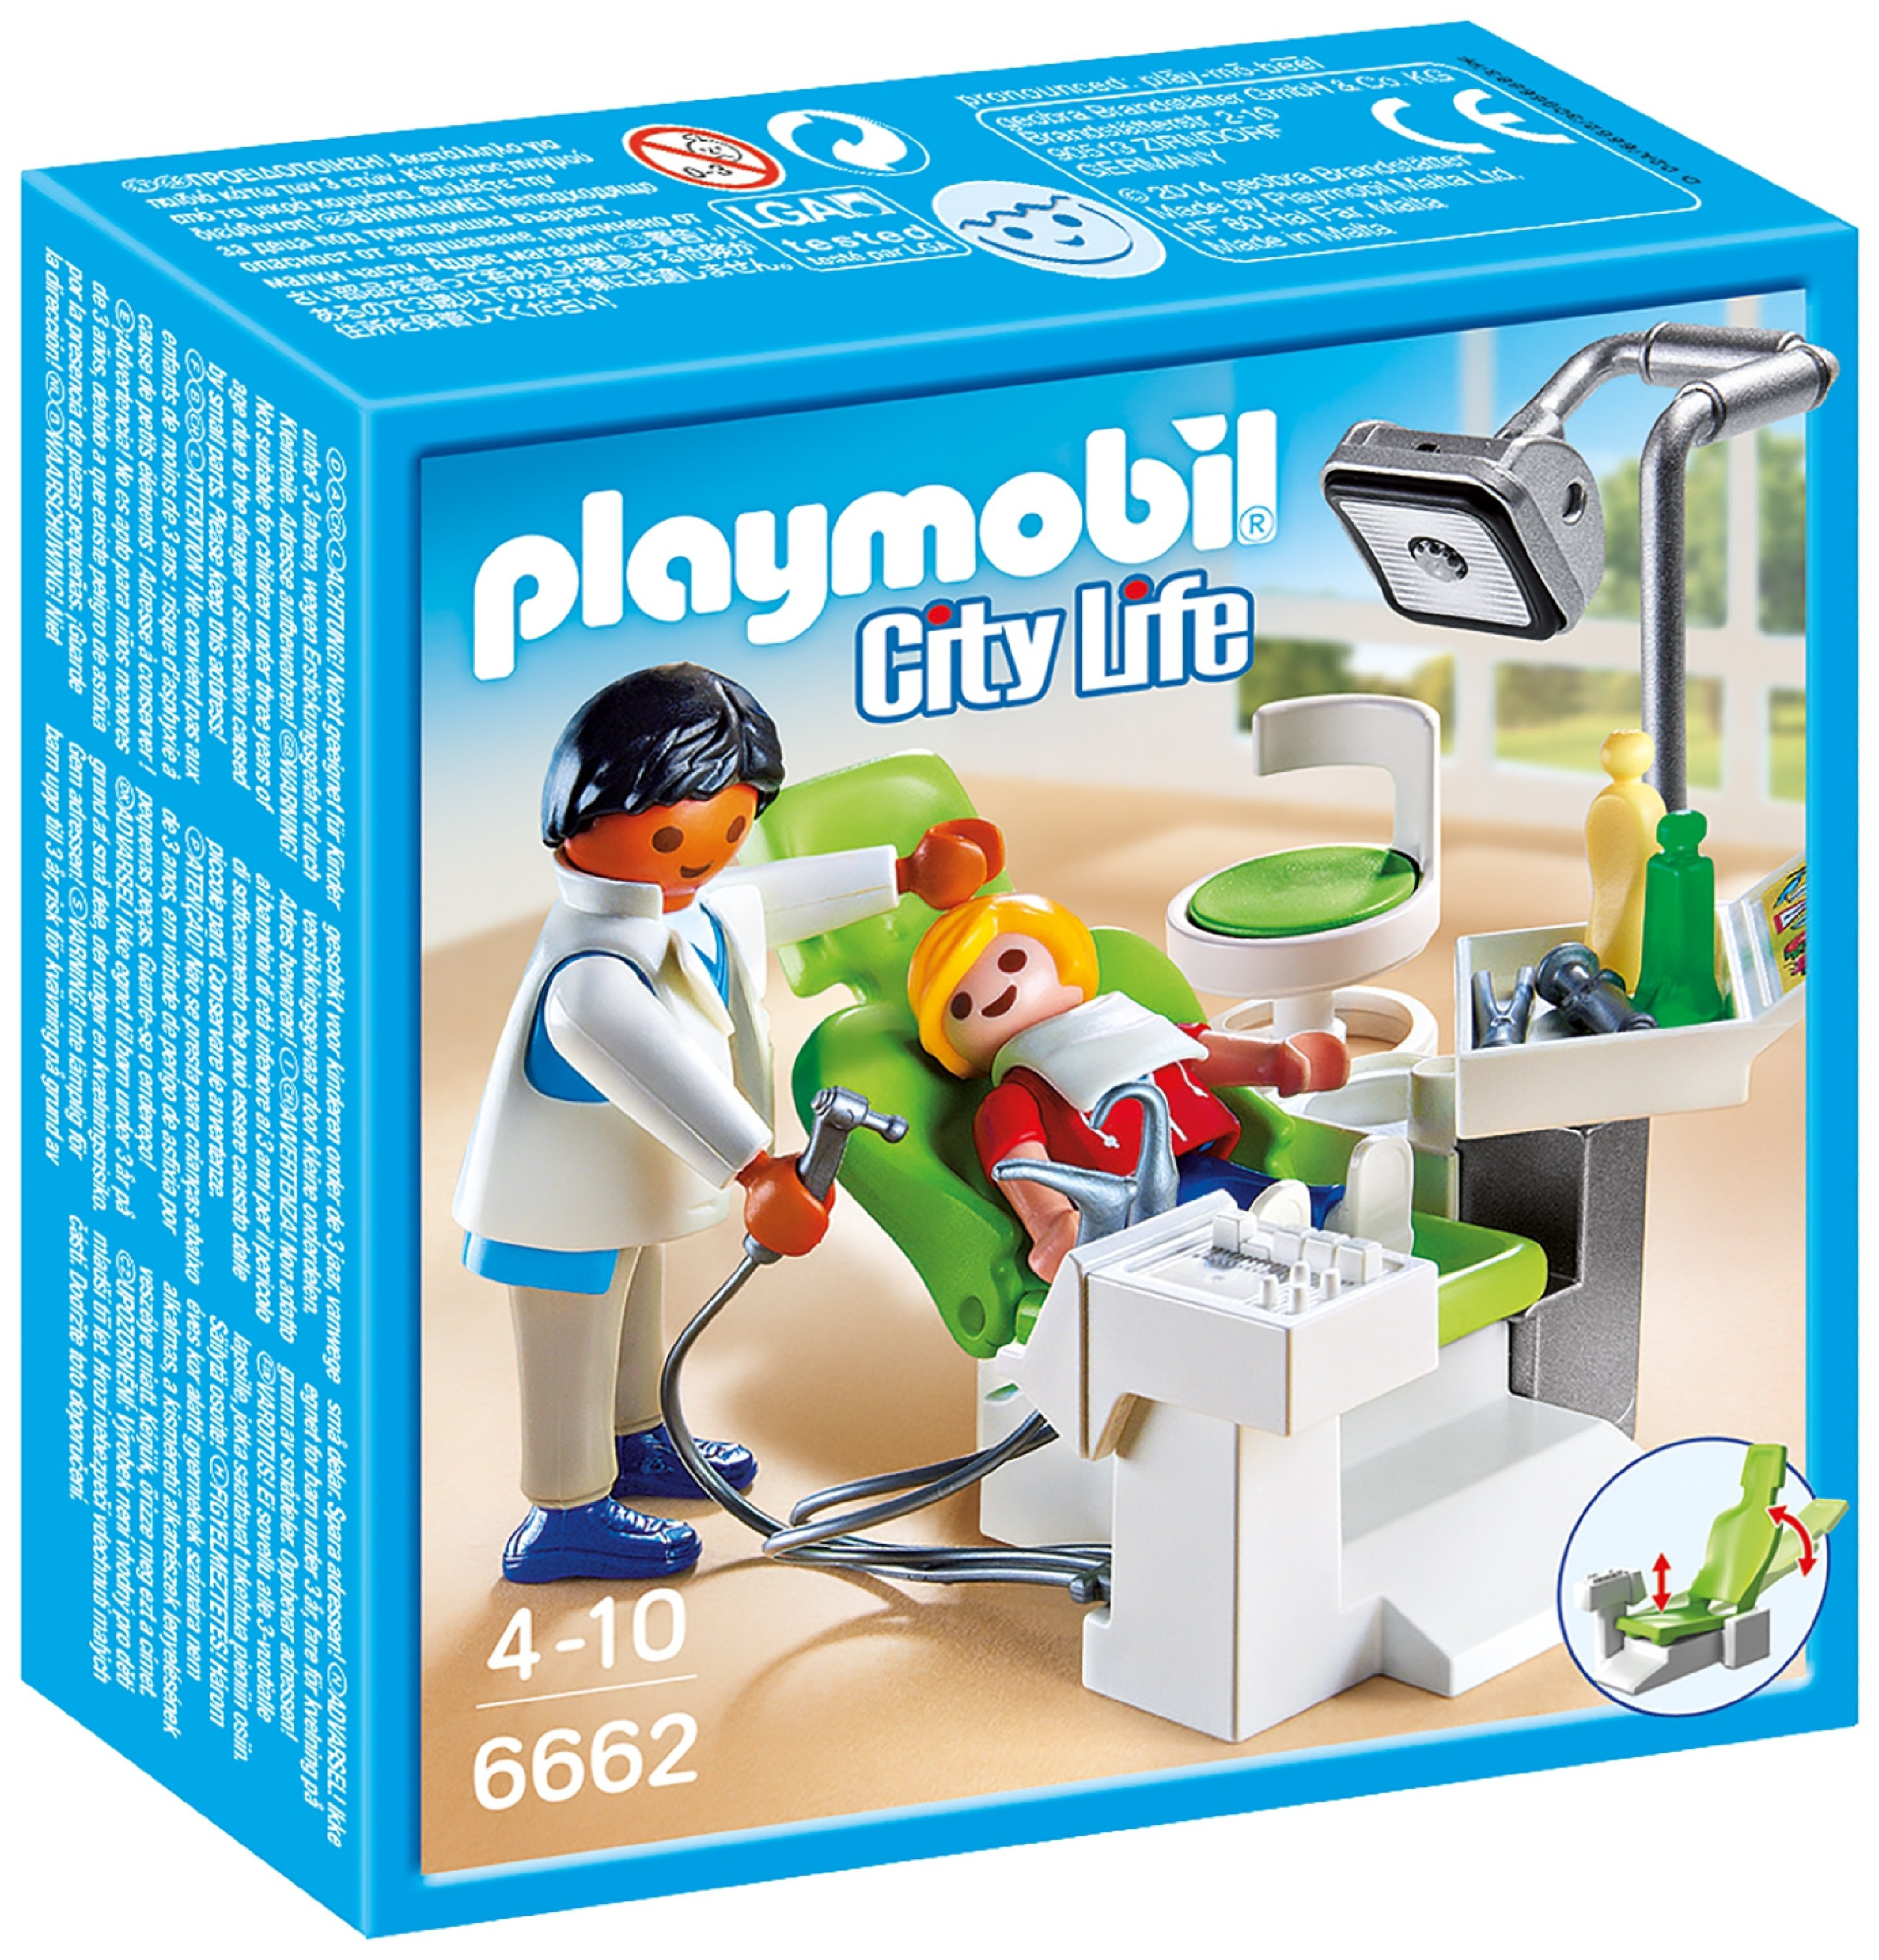 Playmobil 6662 City Life Dentist With Patient.